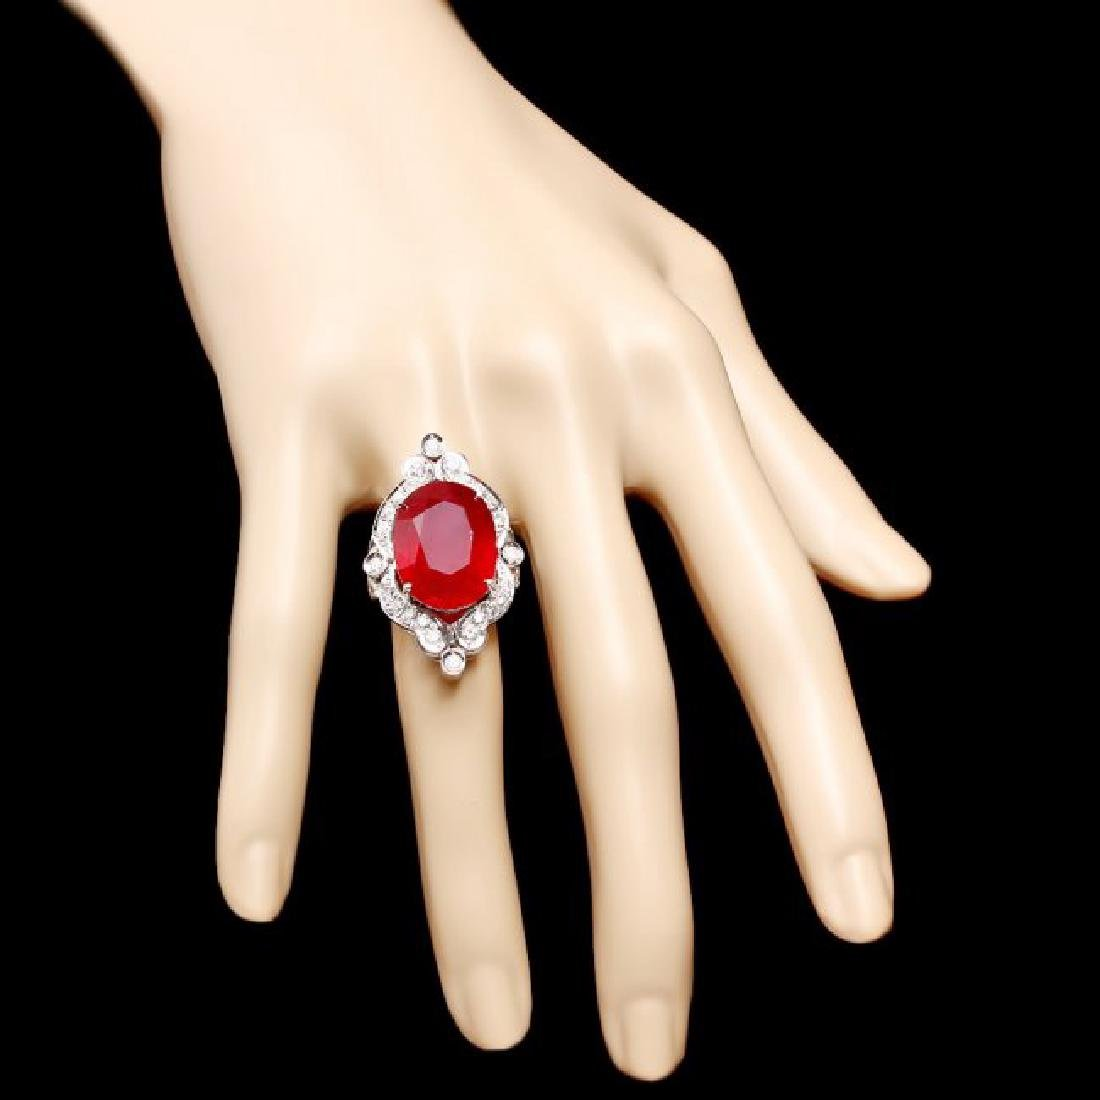 14k White Gold 22.00ct Ruby 1.30ct Diamond Ring - 4